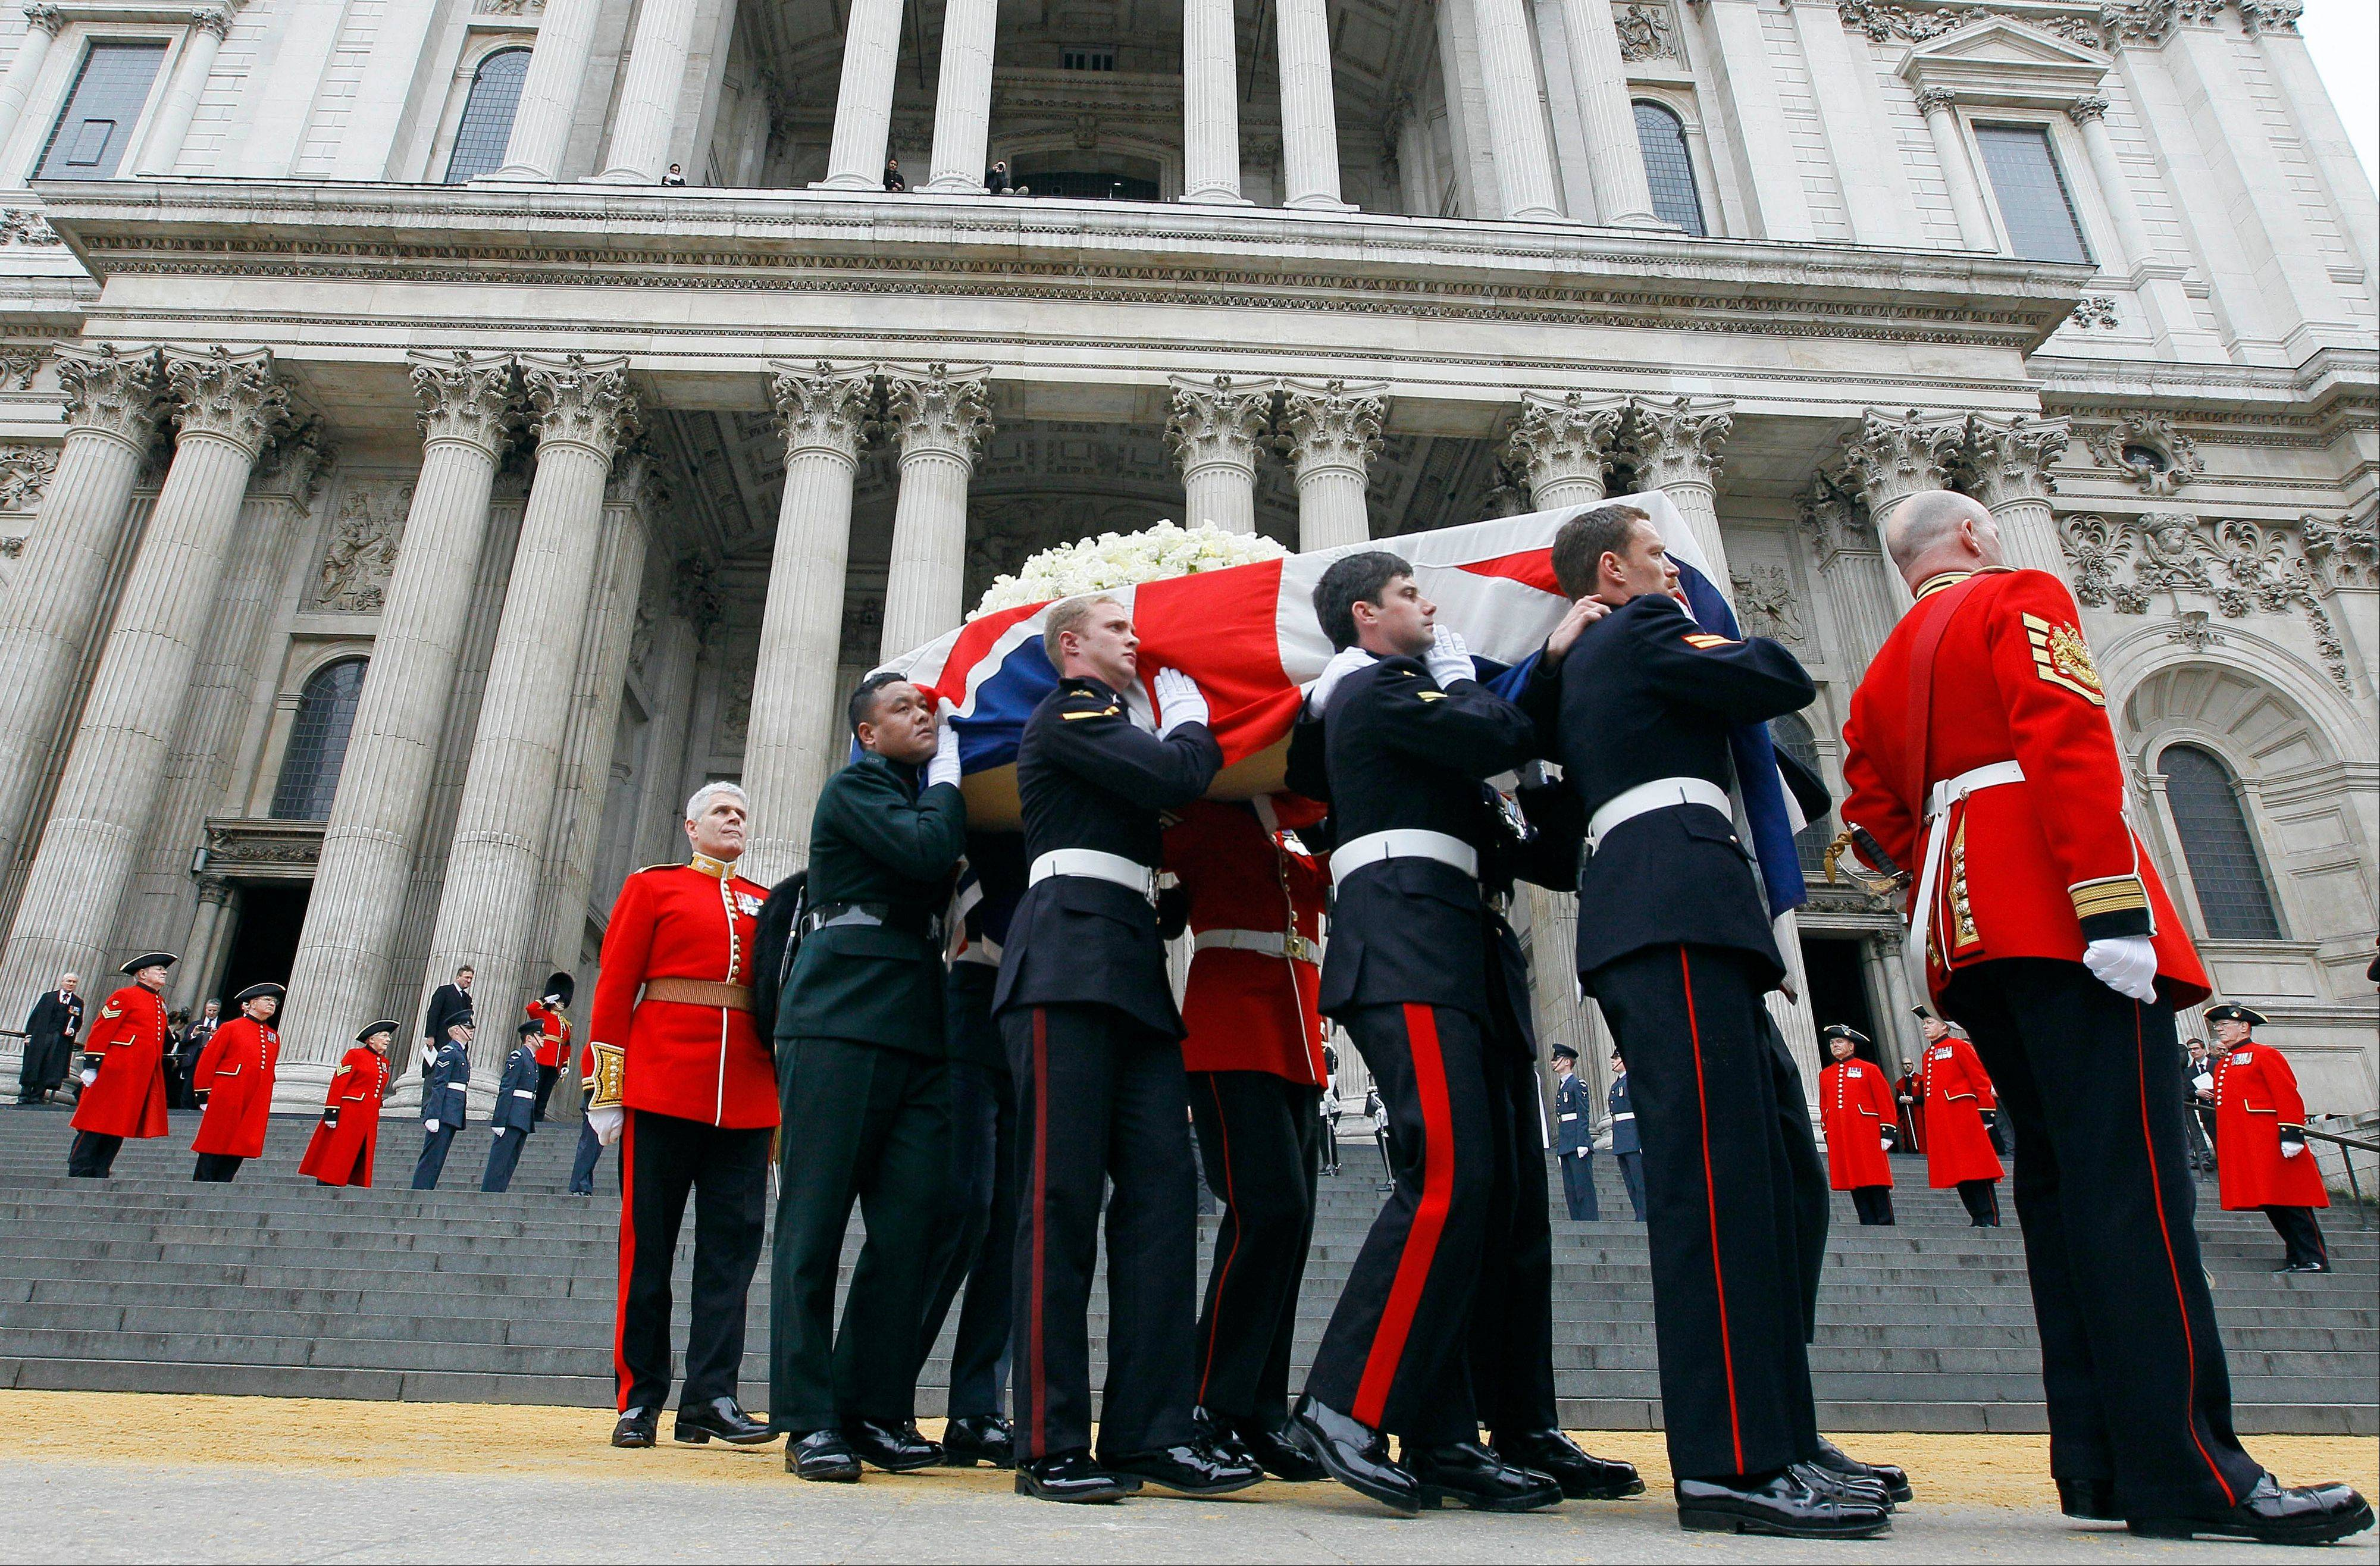 Former British Prime Minister Margaret Thatcher's coffin is carried by pallbearers out from St Paul's Cathedral, following the ceremonial funeral service in London, Wednesday, April 17, 2013. Thatcher, who died, at the age of 87 on April 8, has been accorded a ceremonial funeral with military honors, one step down from a state funeral. Thatcher was elected Prime Minister on May 4, 1979 and she resigned on Nov. 28, 1990, after eleven years in office.